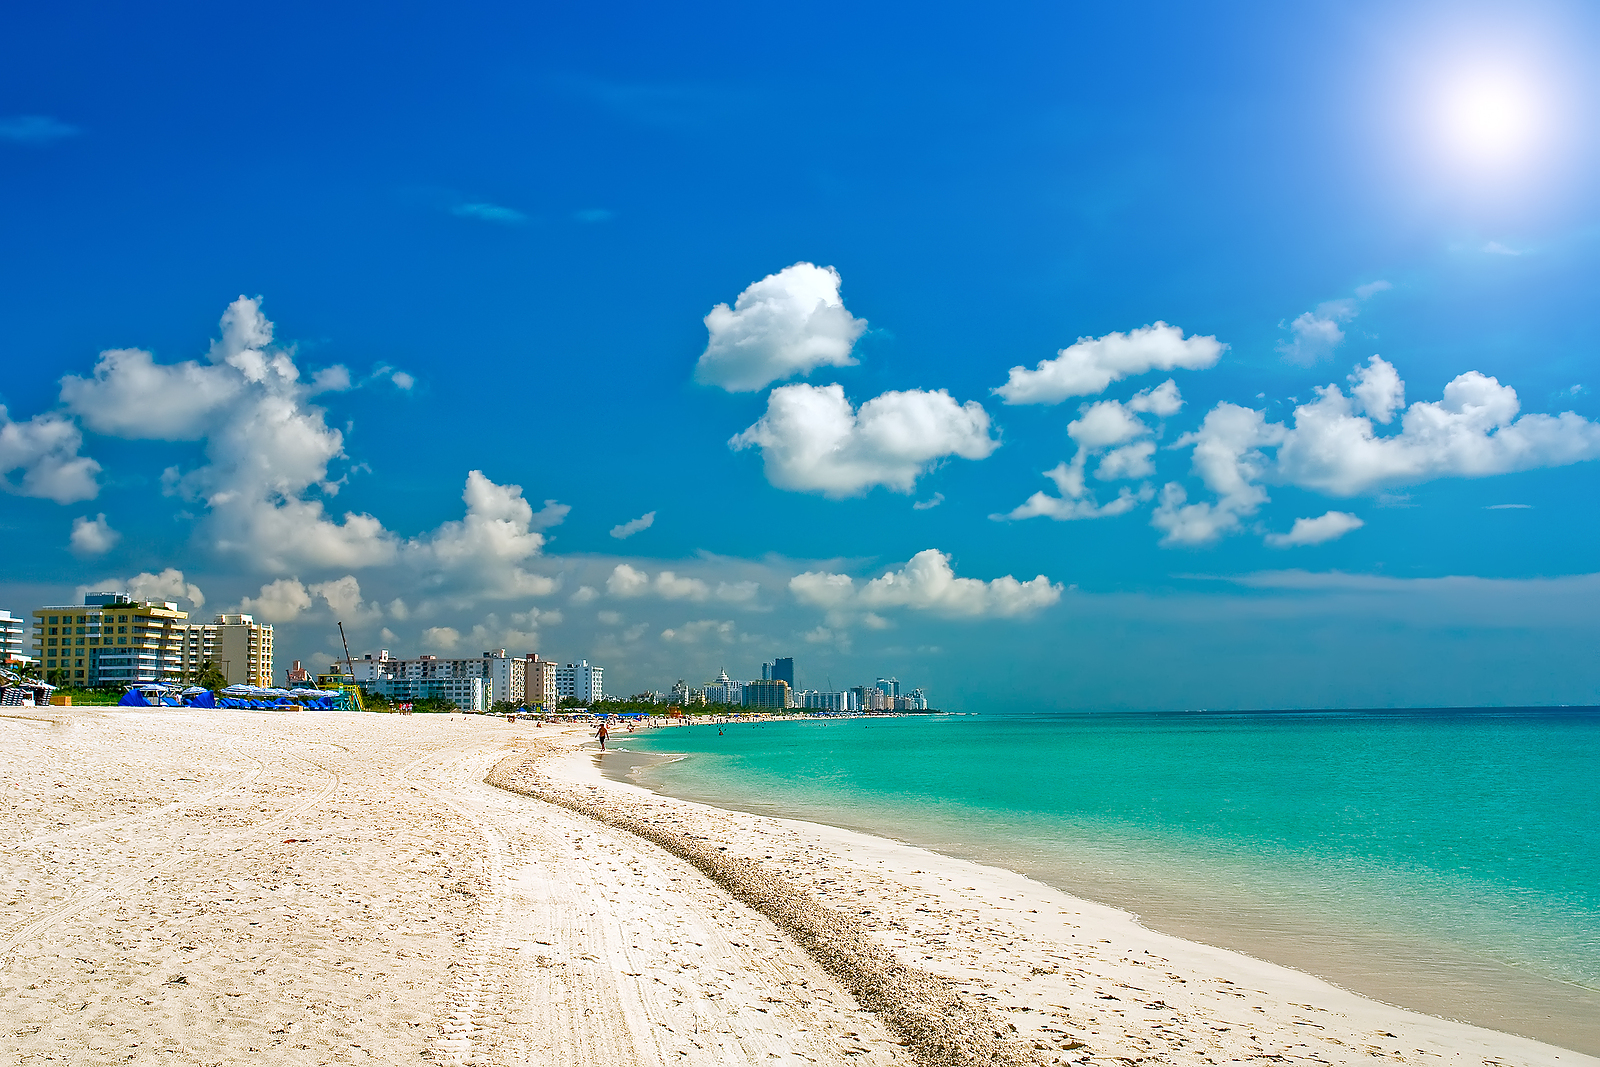 miami beach nature wallpaper widescreen 1600x1067